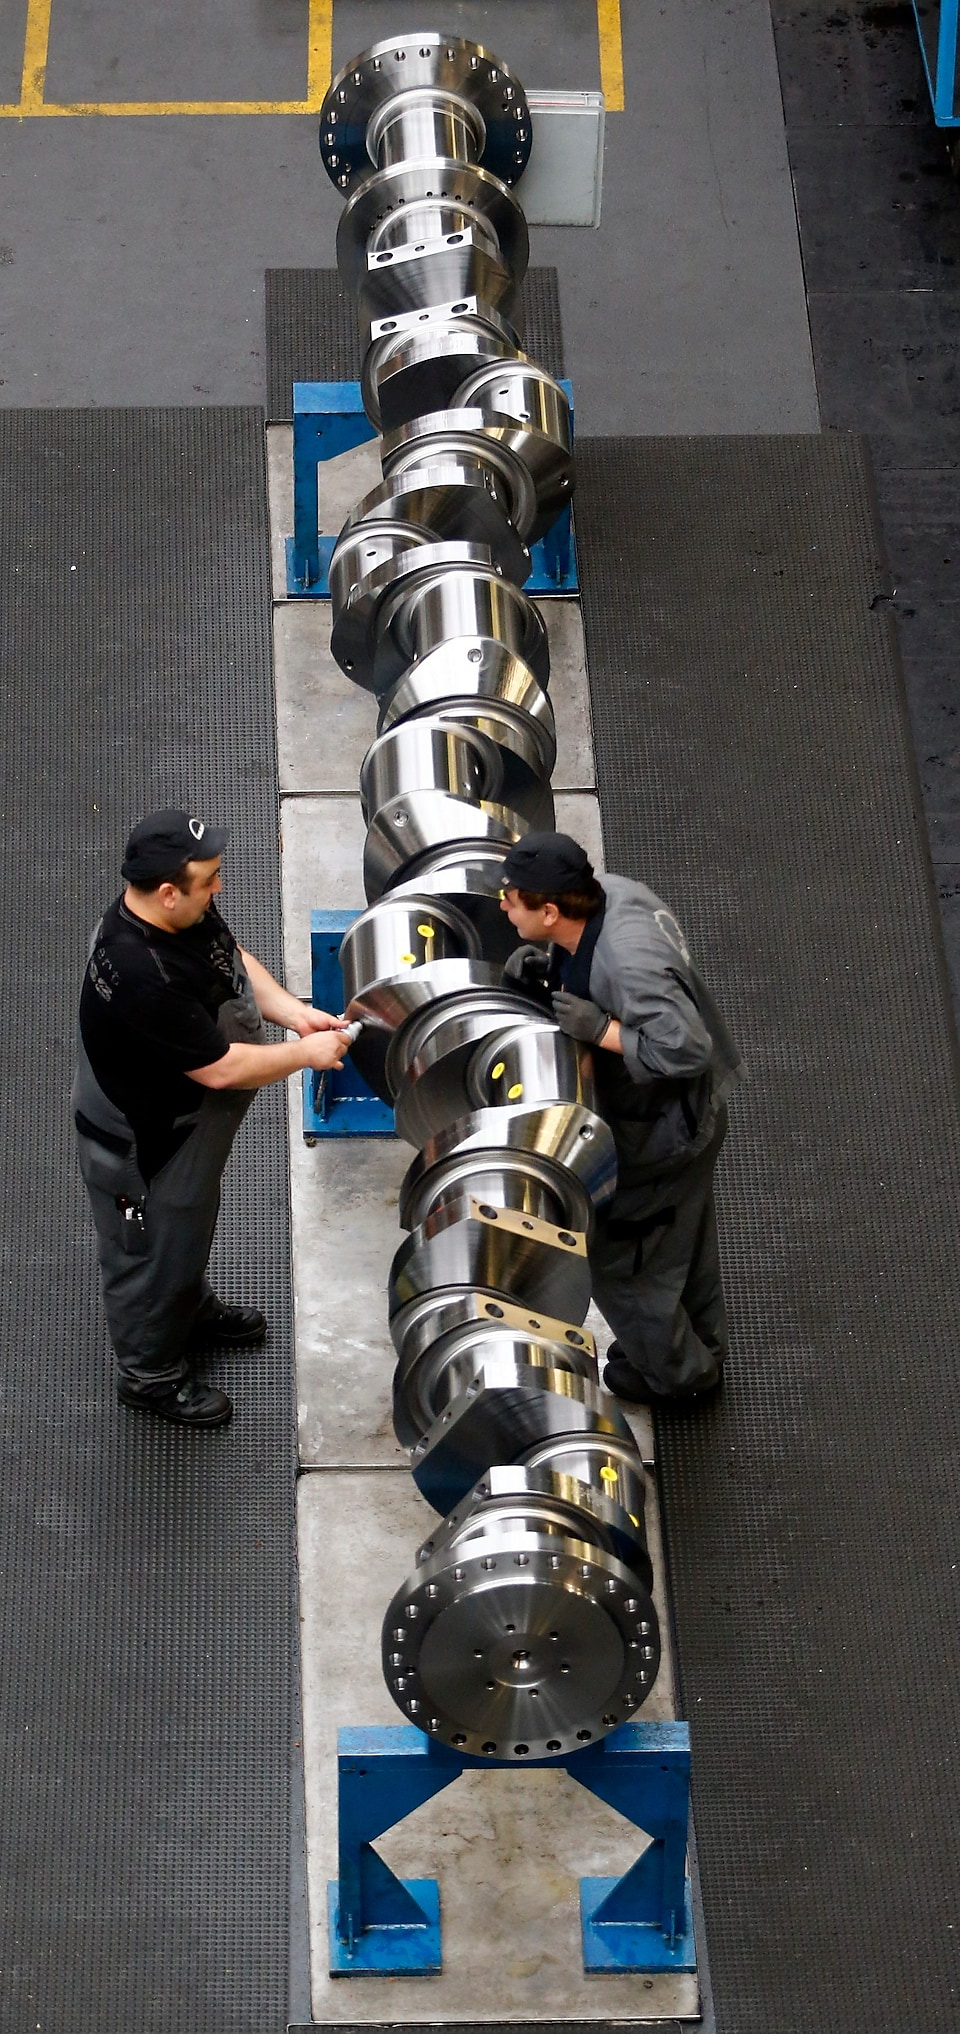 Workers assemble a part for a large Diesel engine at the MAN Diesel & Turbo factory